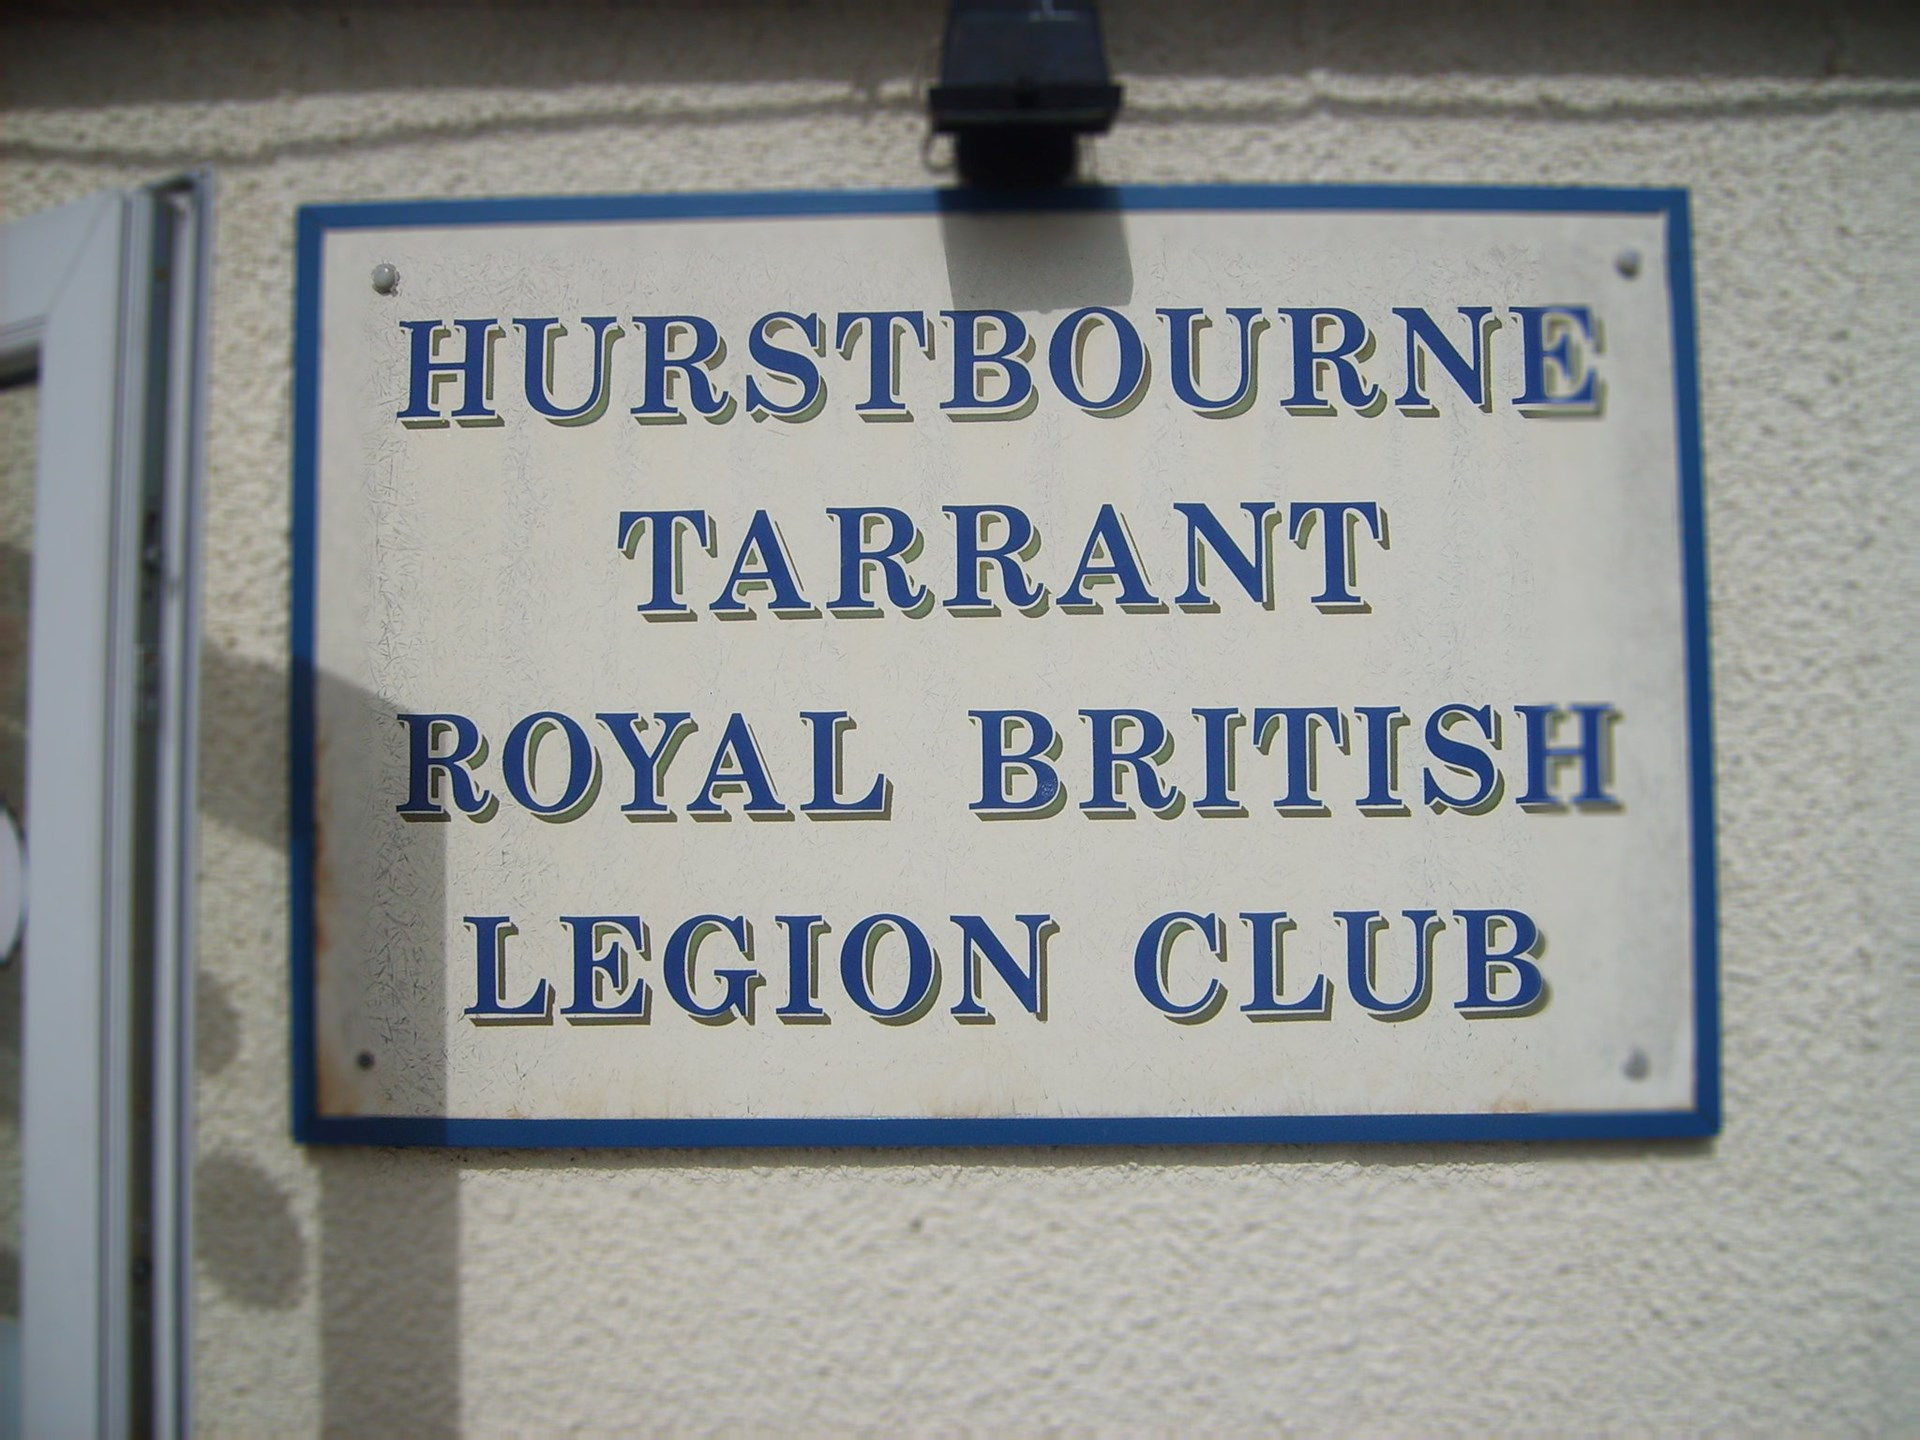 Hurstbourne Tarrant Parish HBT Royal British Legion